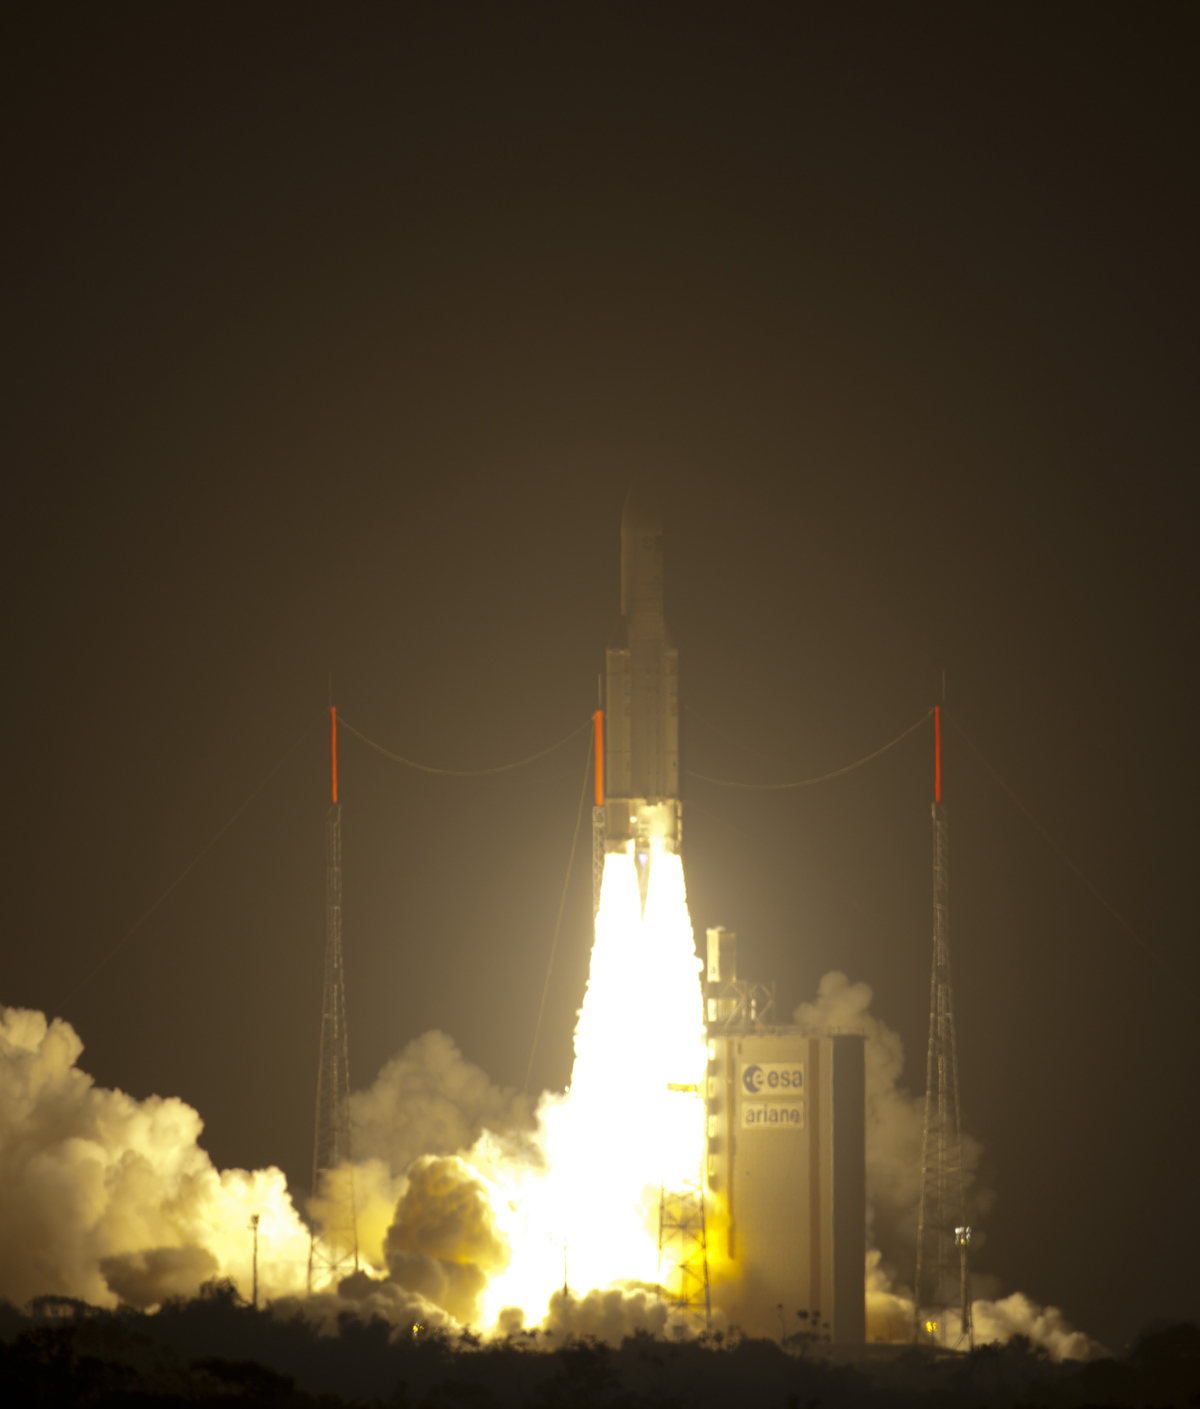 ESA's ATV-2 Johannes Kepler Launches Toward ISS